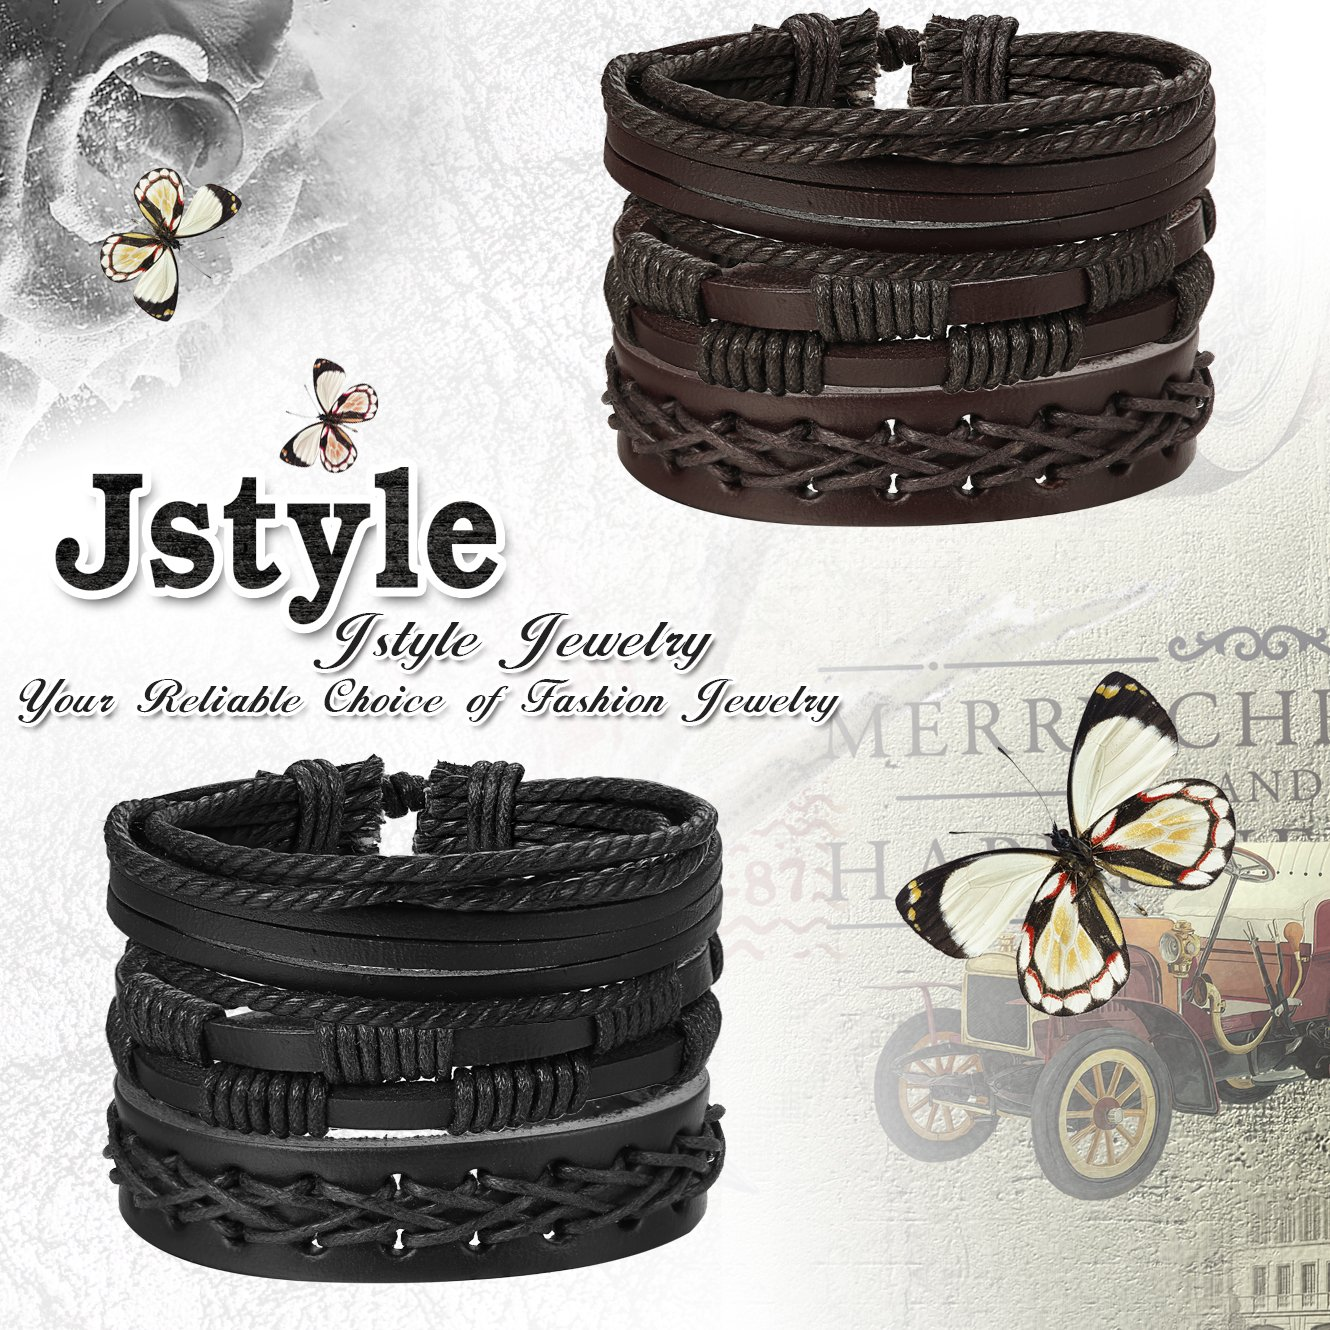 Jstyle 12Pcs Braided Leather Bracelet for Men Women Cuff Wrap Bracelet Adjustable Black and Brown (A:12Pcs) by Jstyle (Image #4)